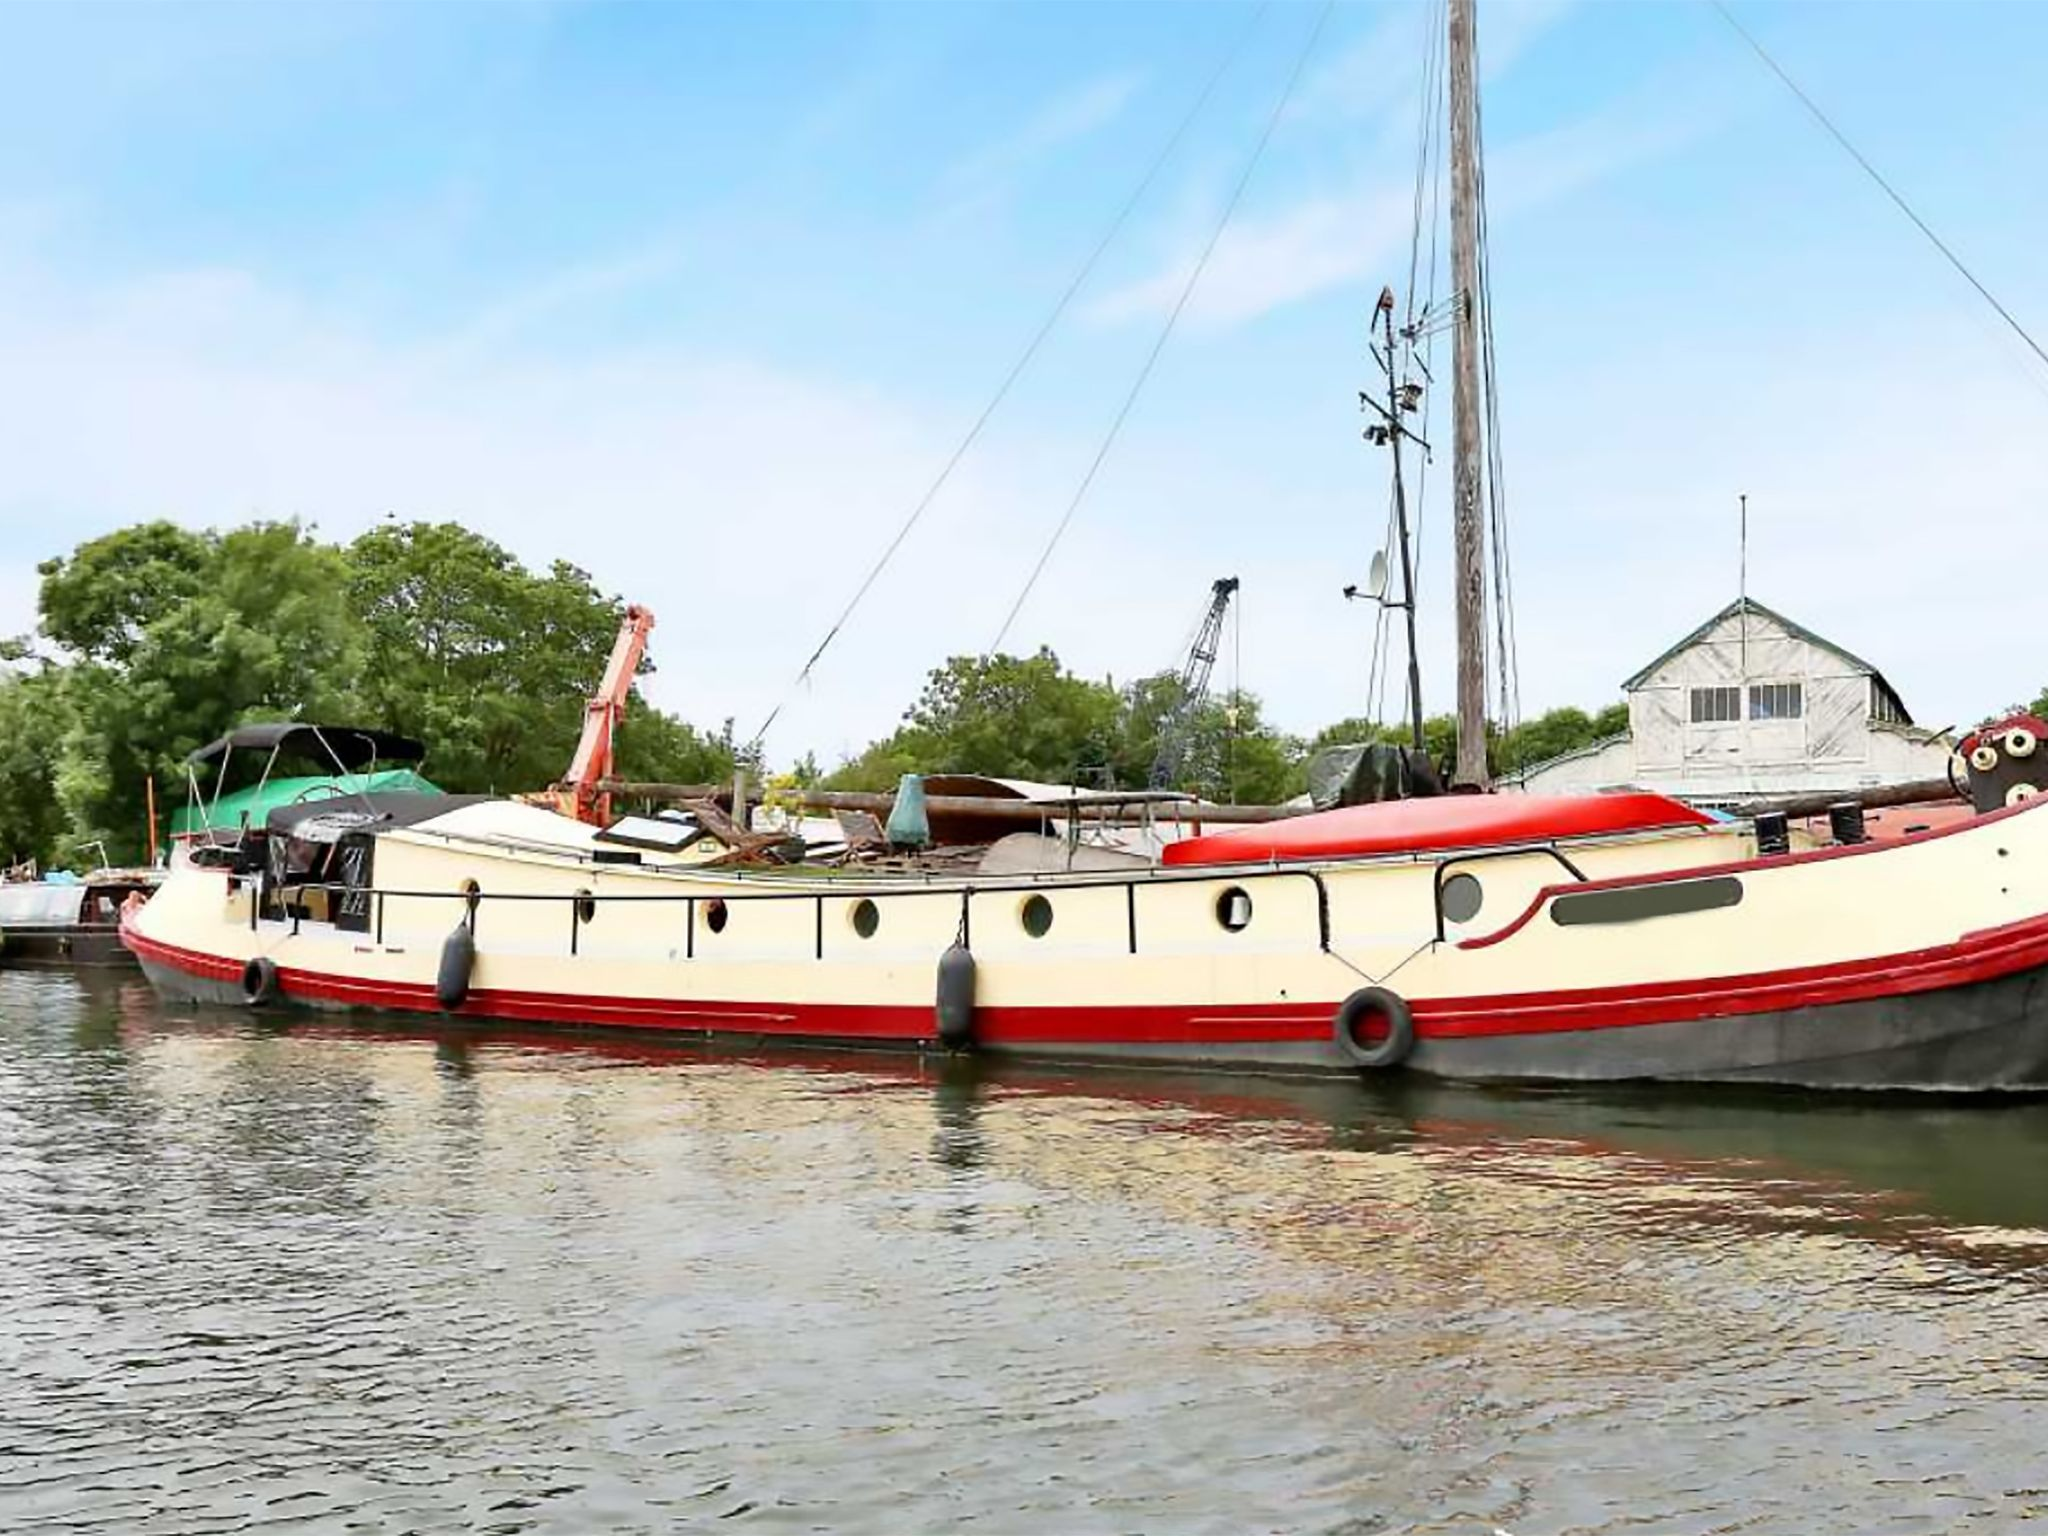 Dutch Barge 23m with London mooring